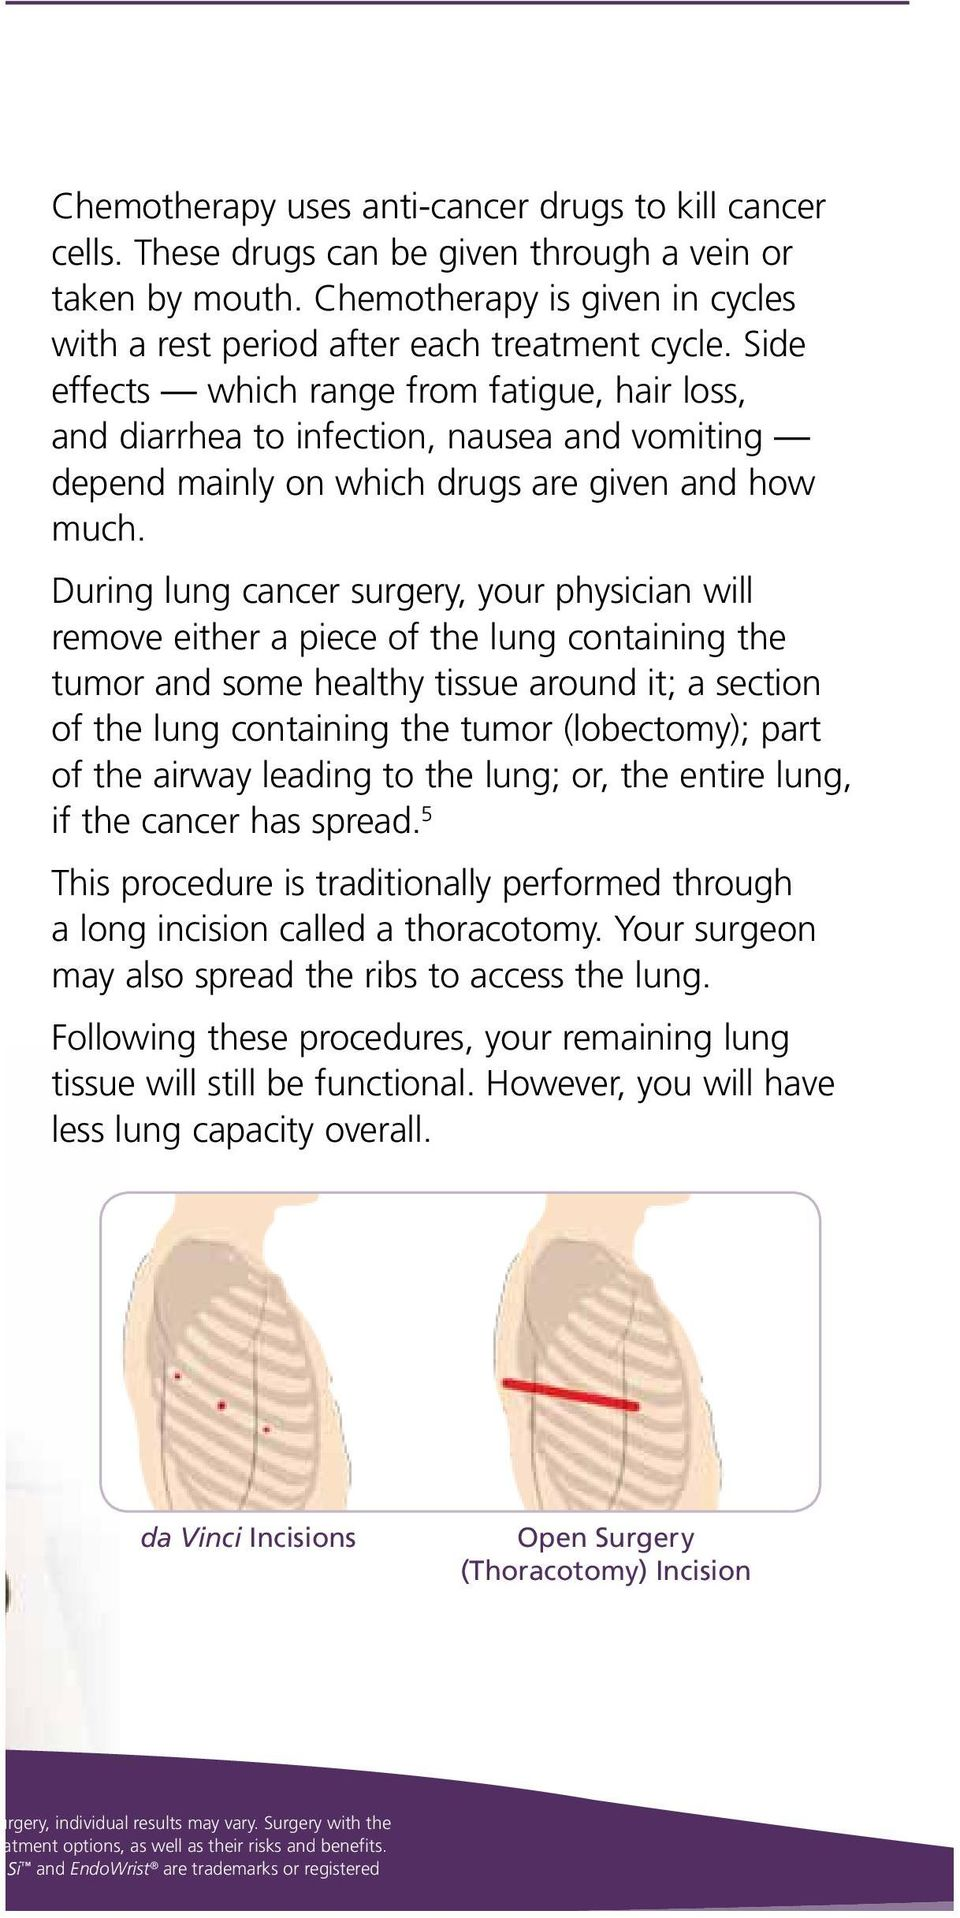 During lung cancer surgery, your physician will remove either a piece of the lung containing the tumor and some healthy tissue around it; a section of the lung containing the tumor (lobectomy); part